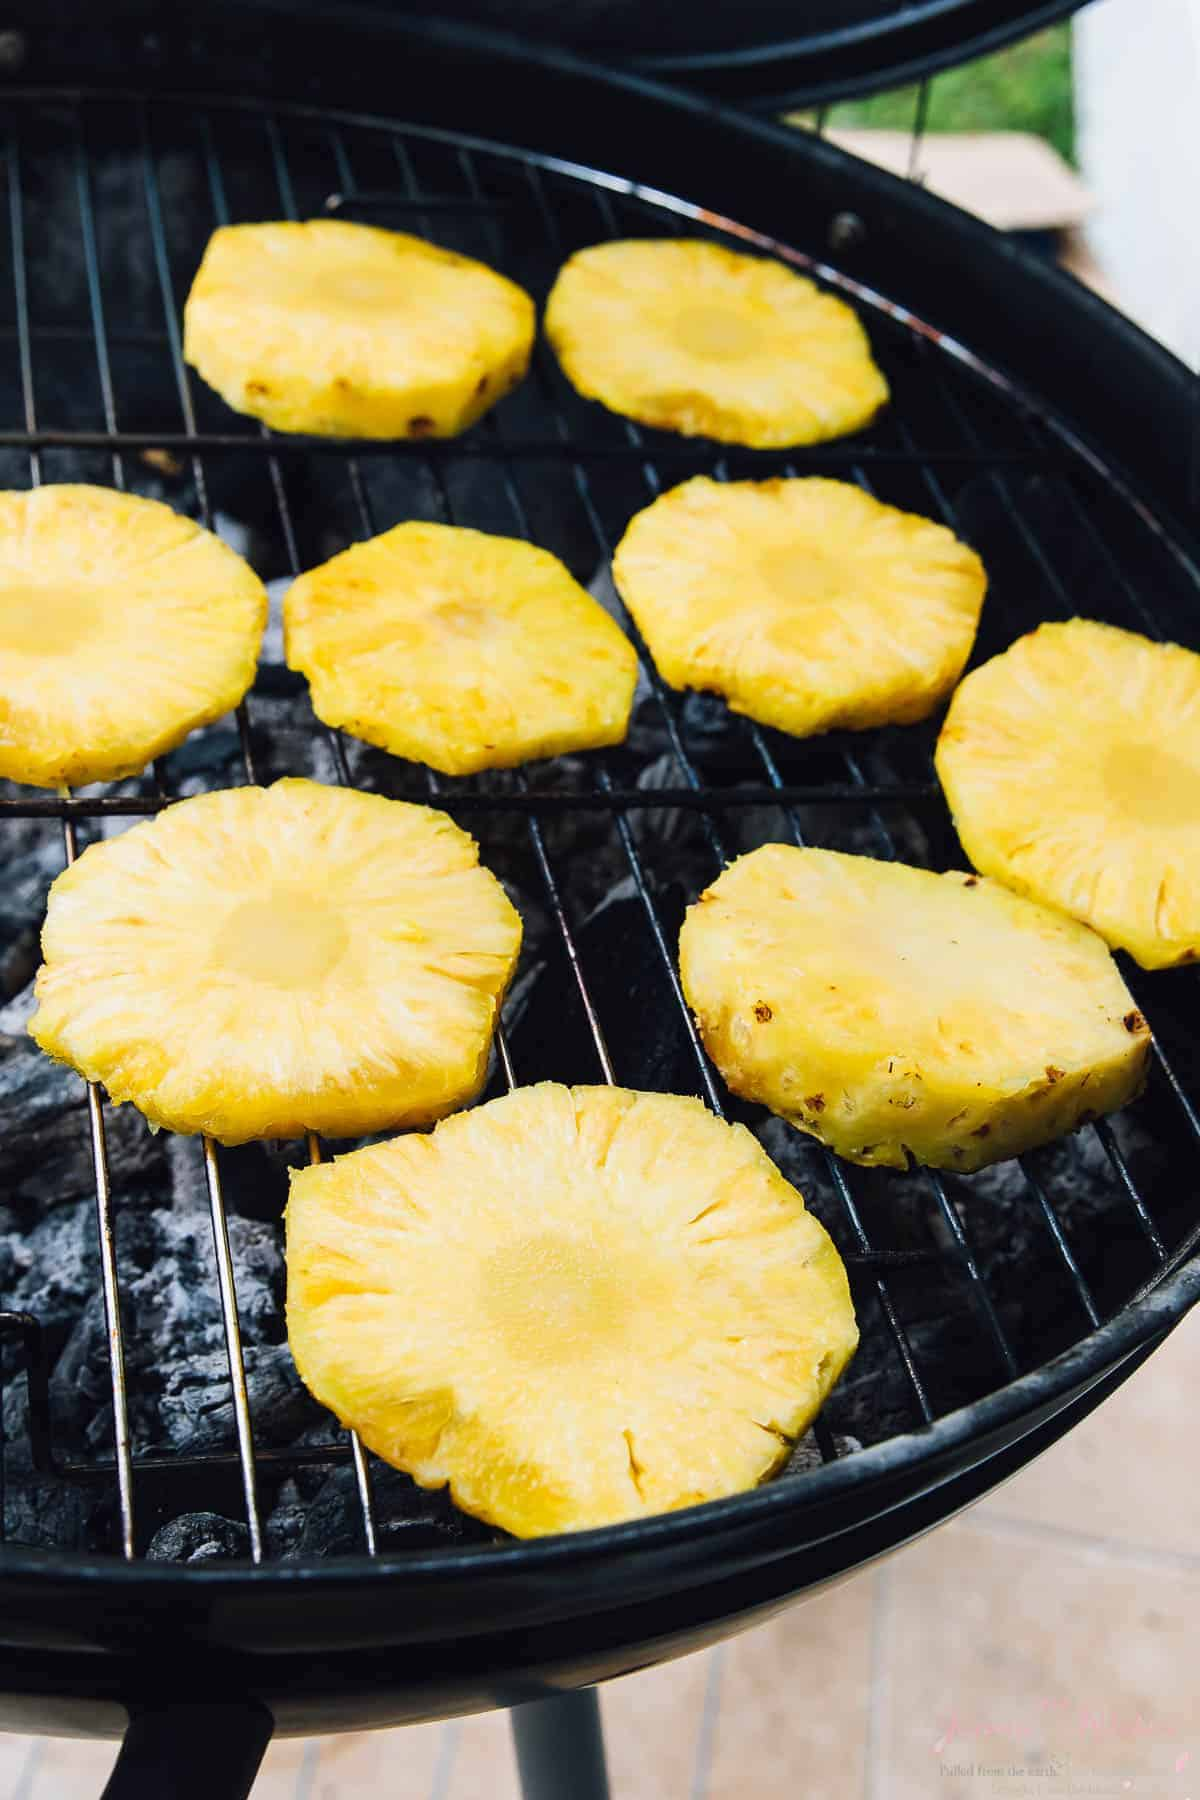 Slices of pineapple on a BBQ grill.